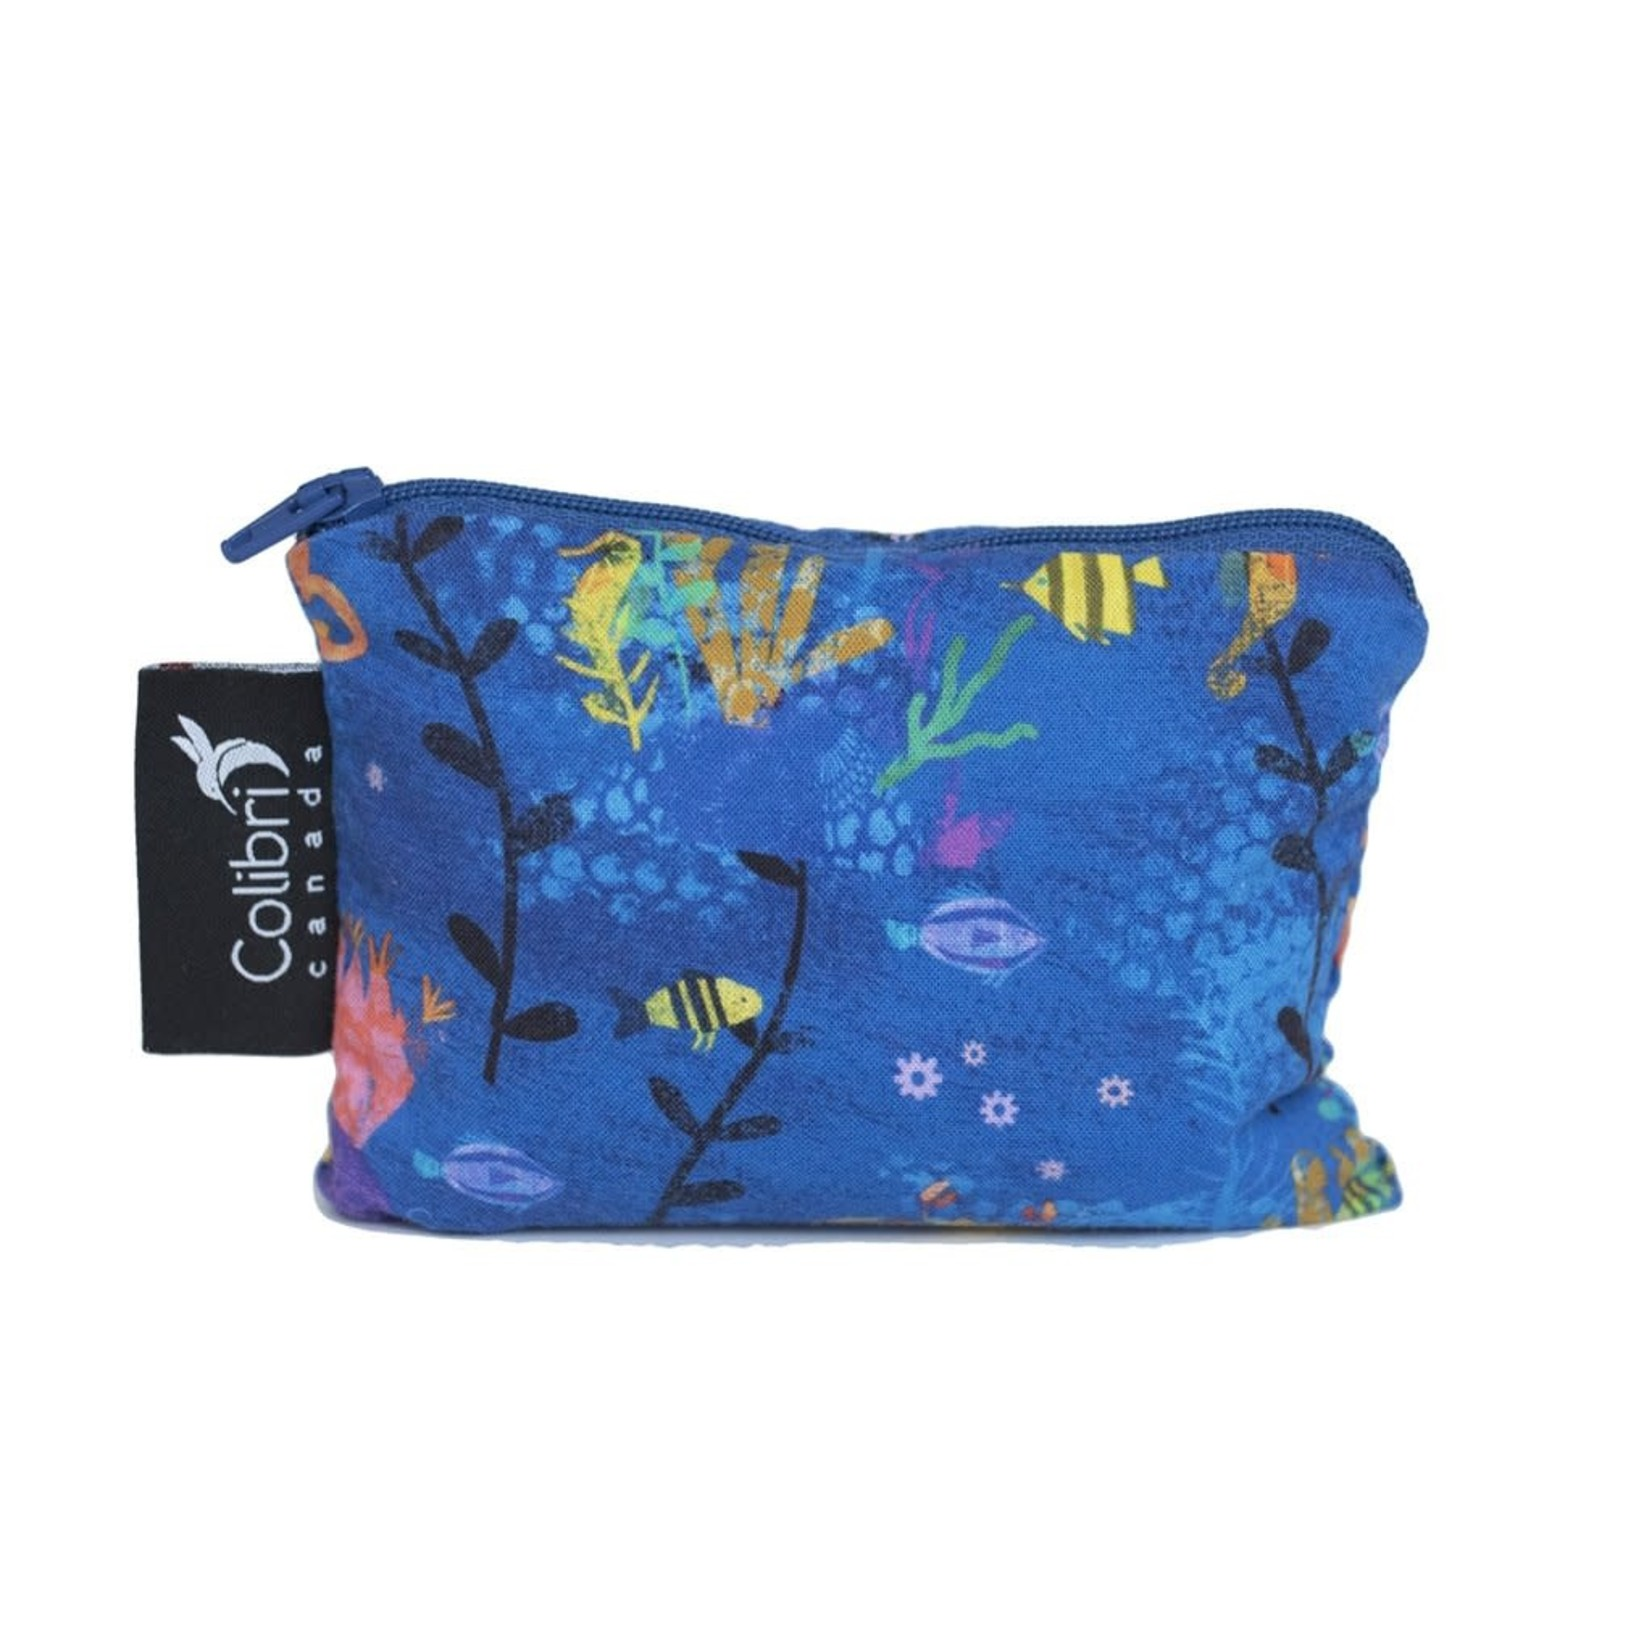 REUSABLE SNACK BAGS - UNDER THE SEA